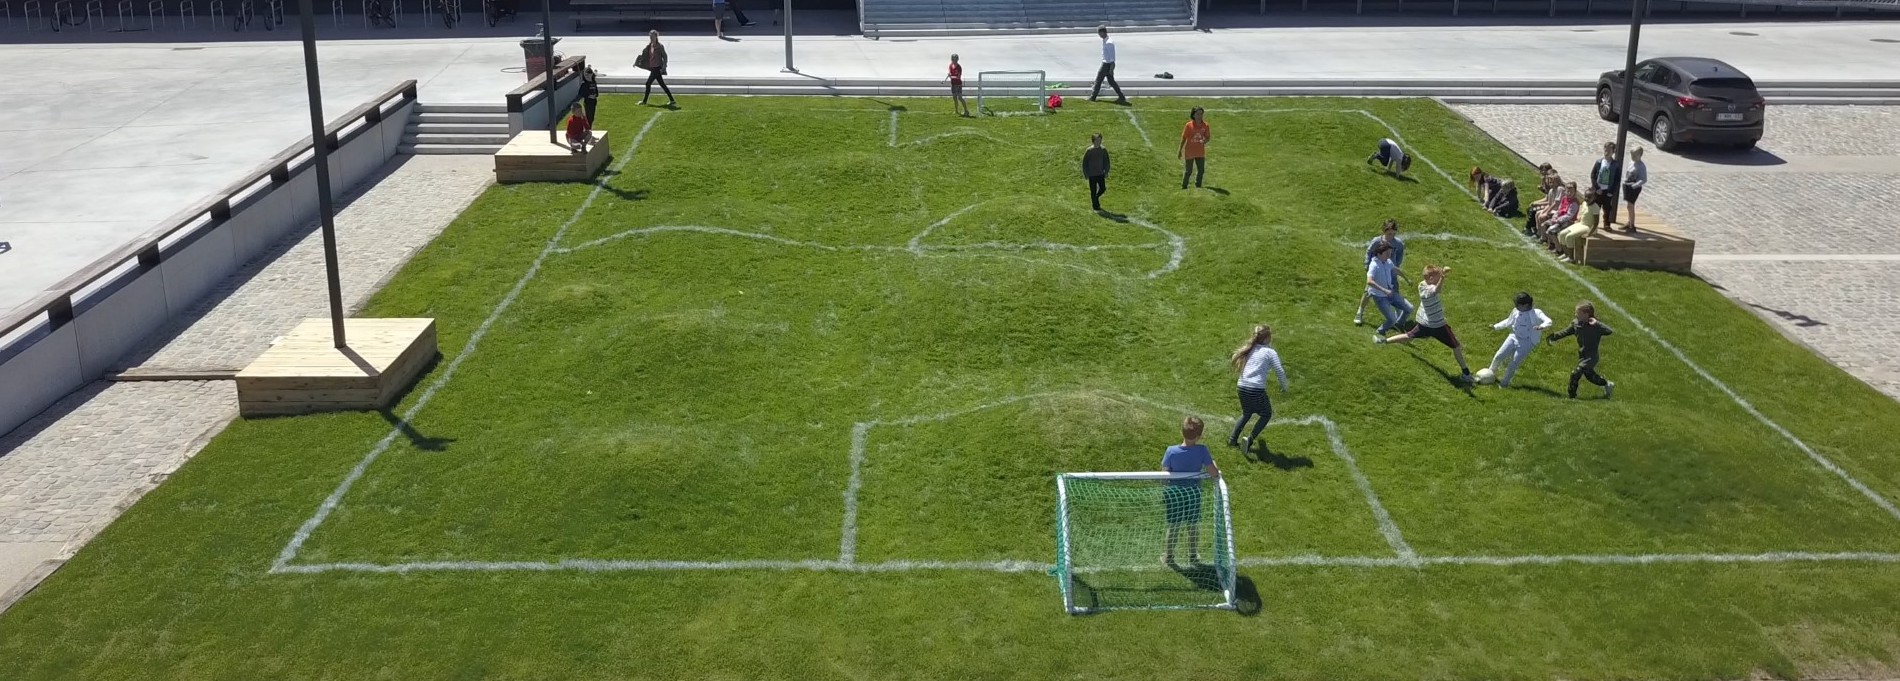 Untitled(soccer-pitch)-drone.jpg